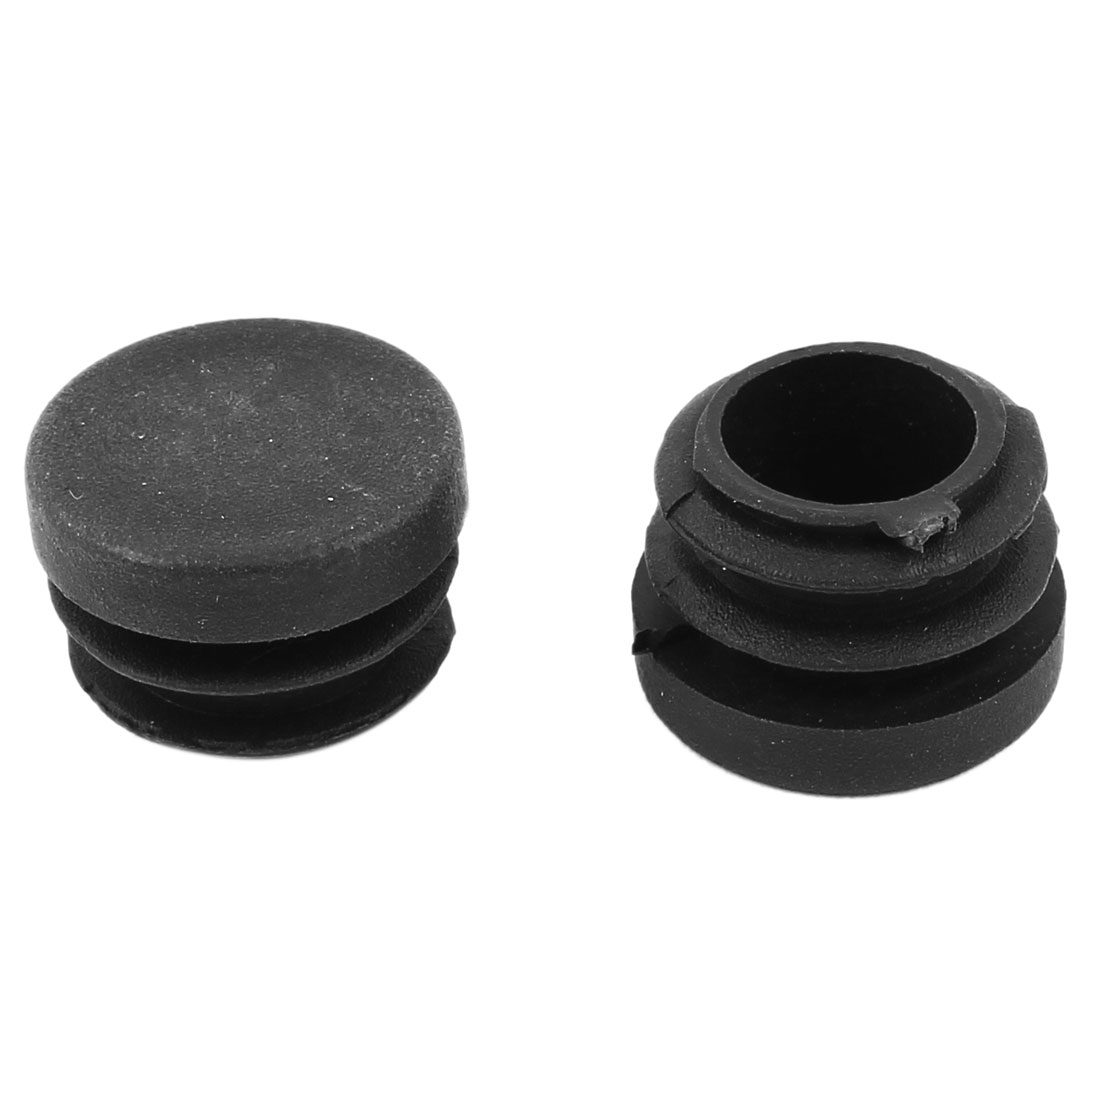 2 Pieces Black Plastic 22mm Dia Round Blanking End Caps Ribbed Tubing Inserts